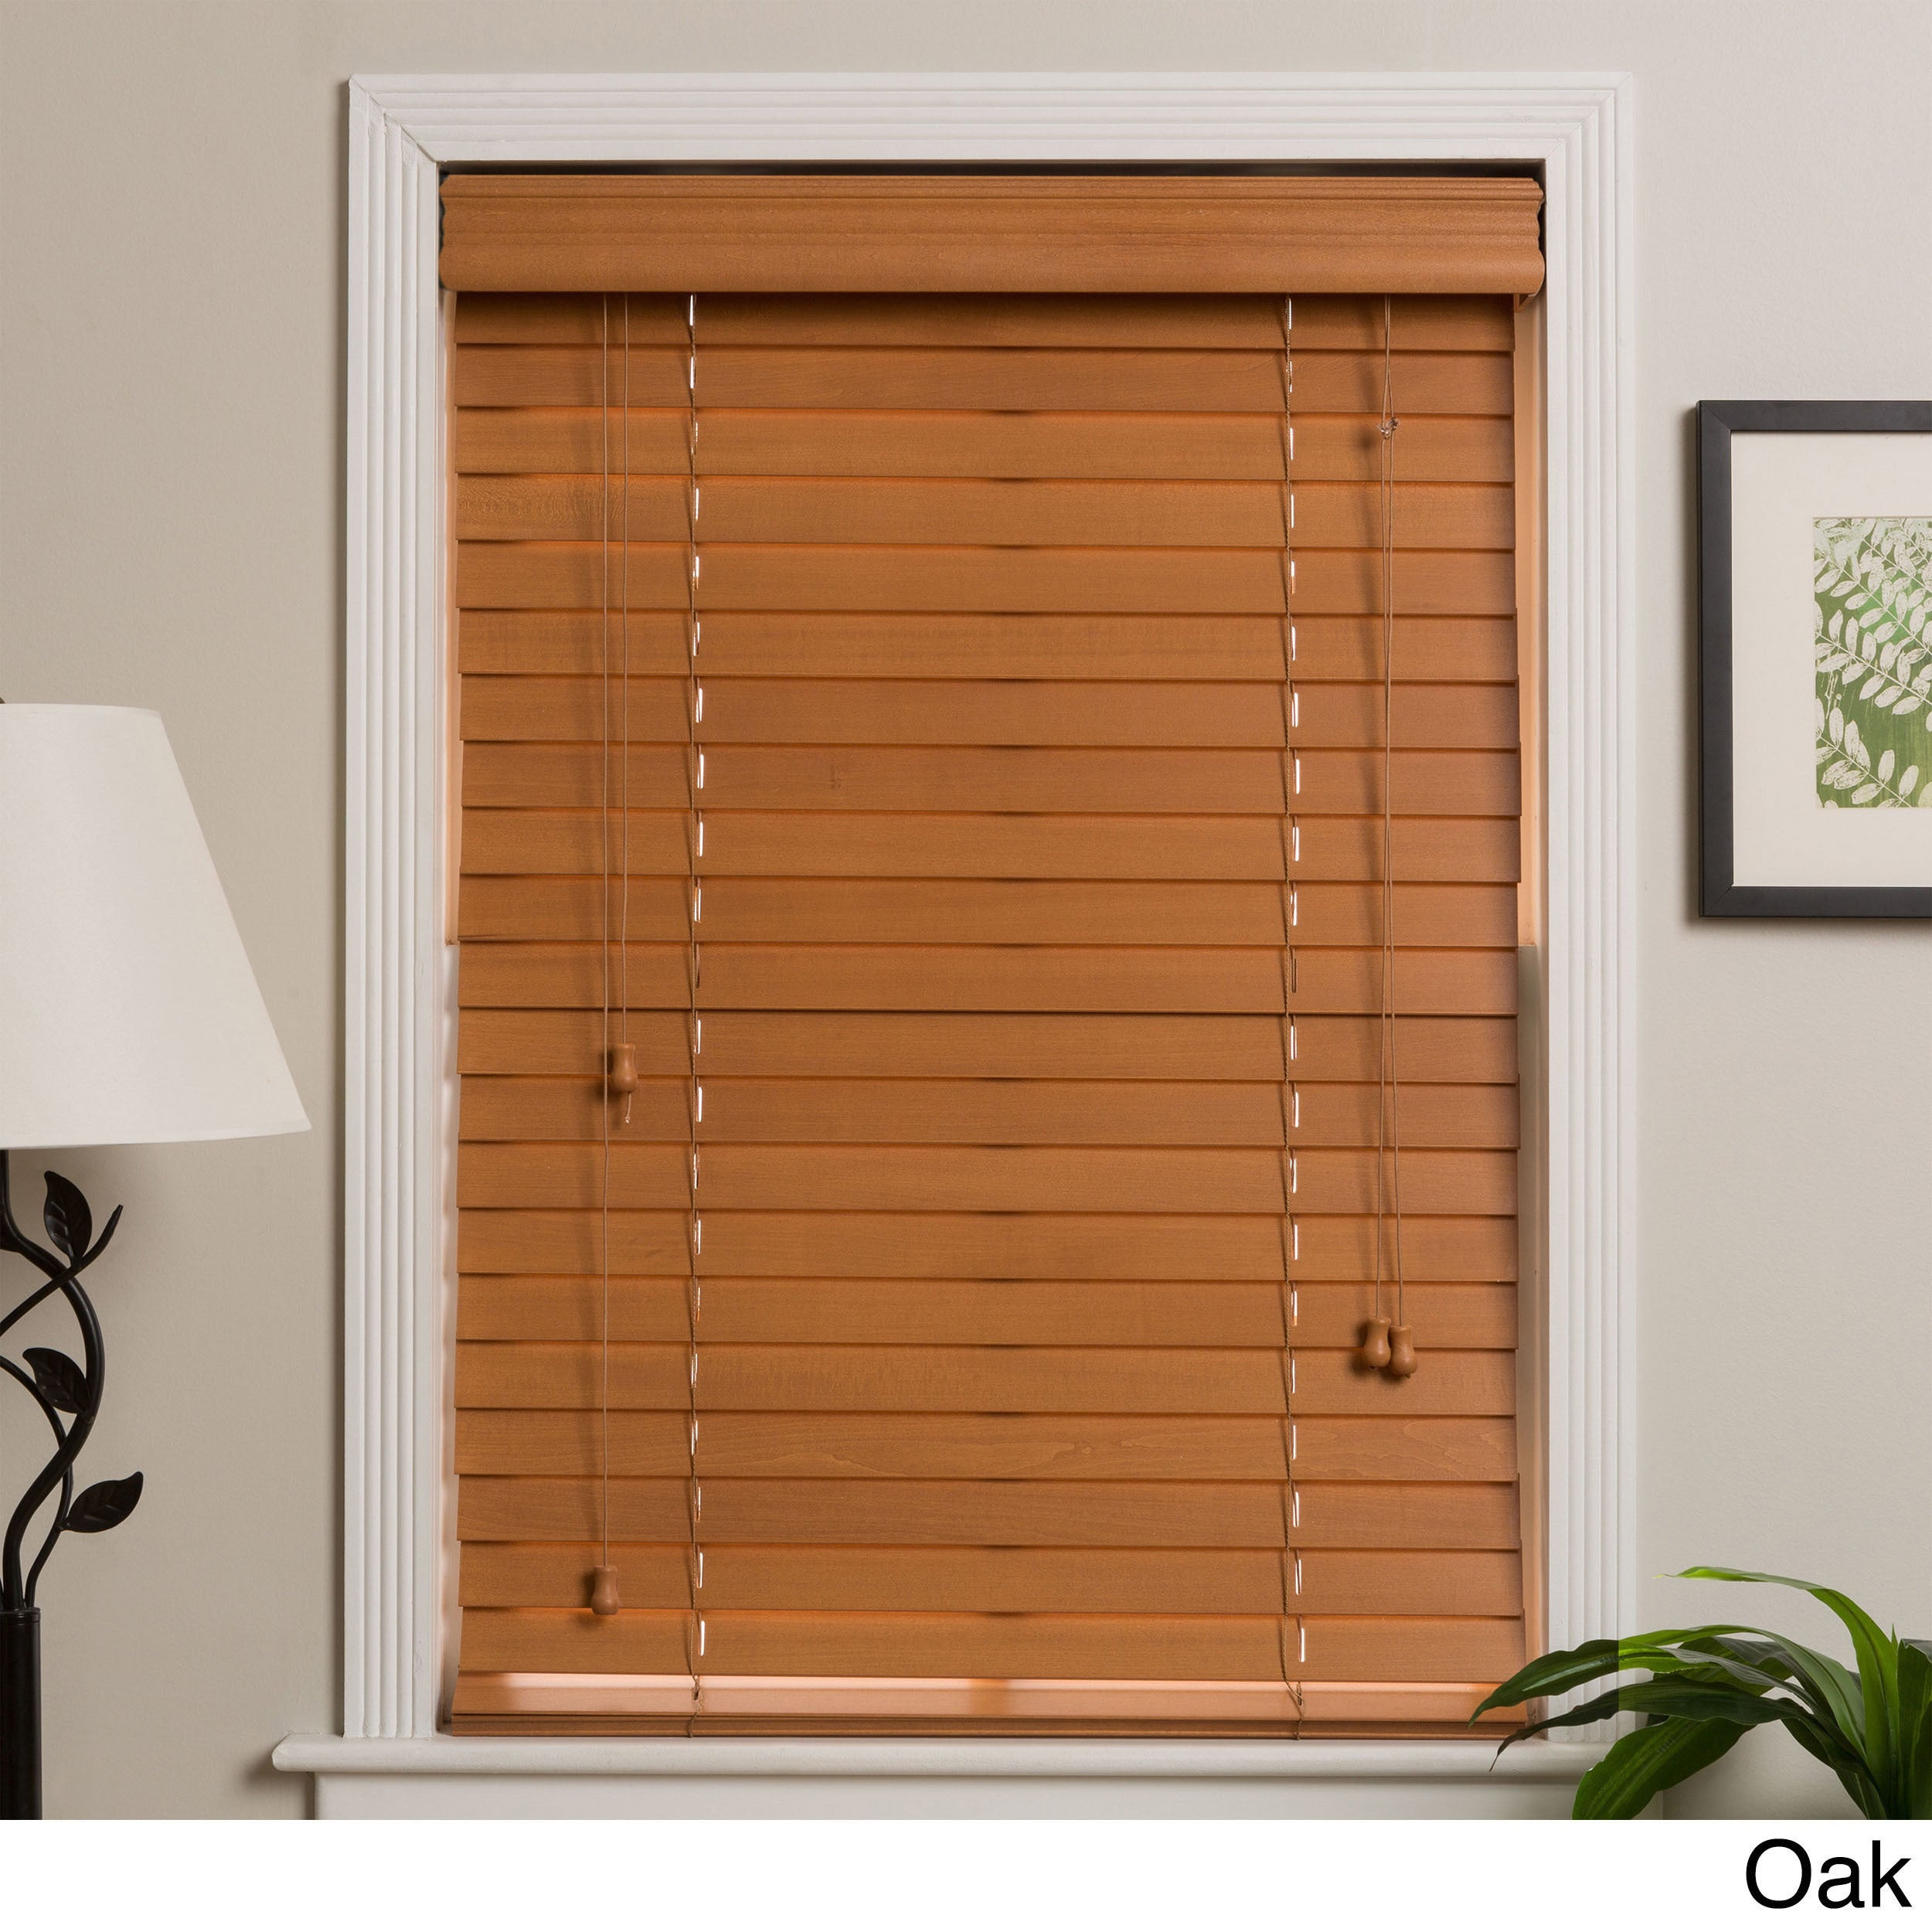 img night day blinds blind same and